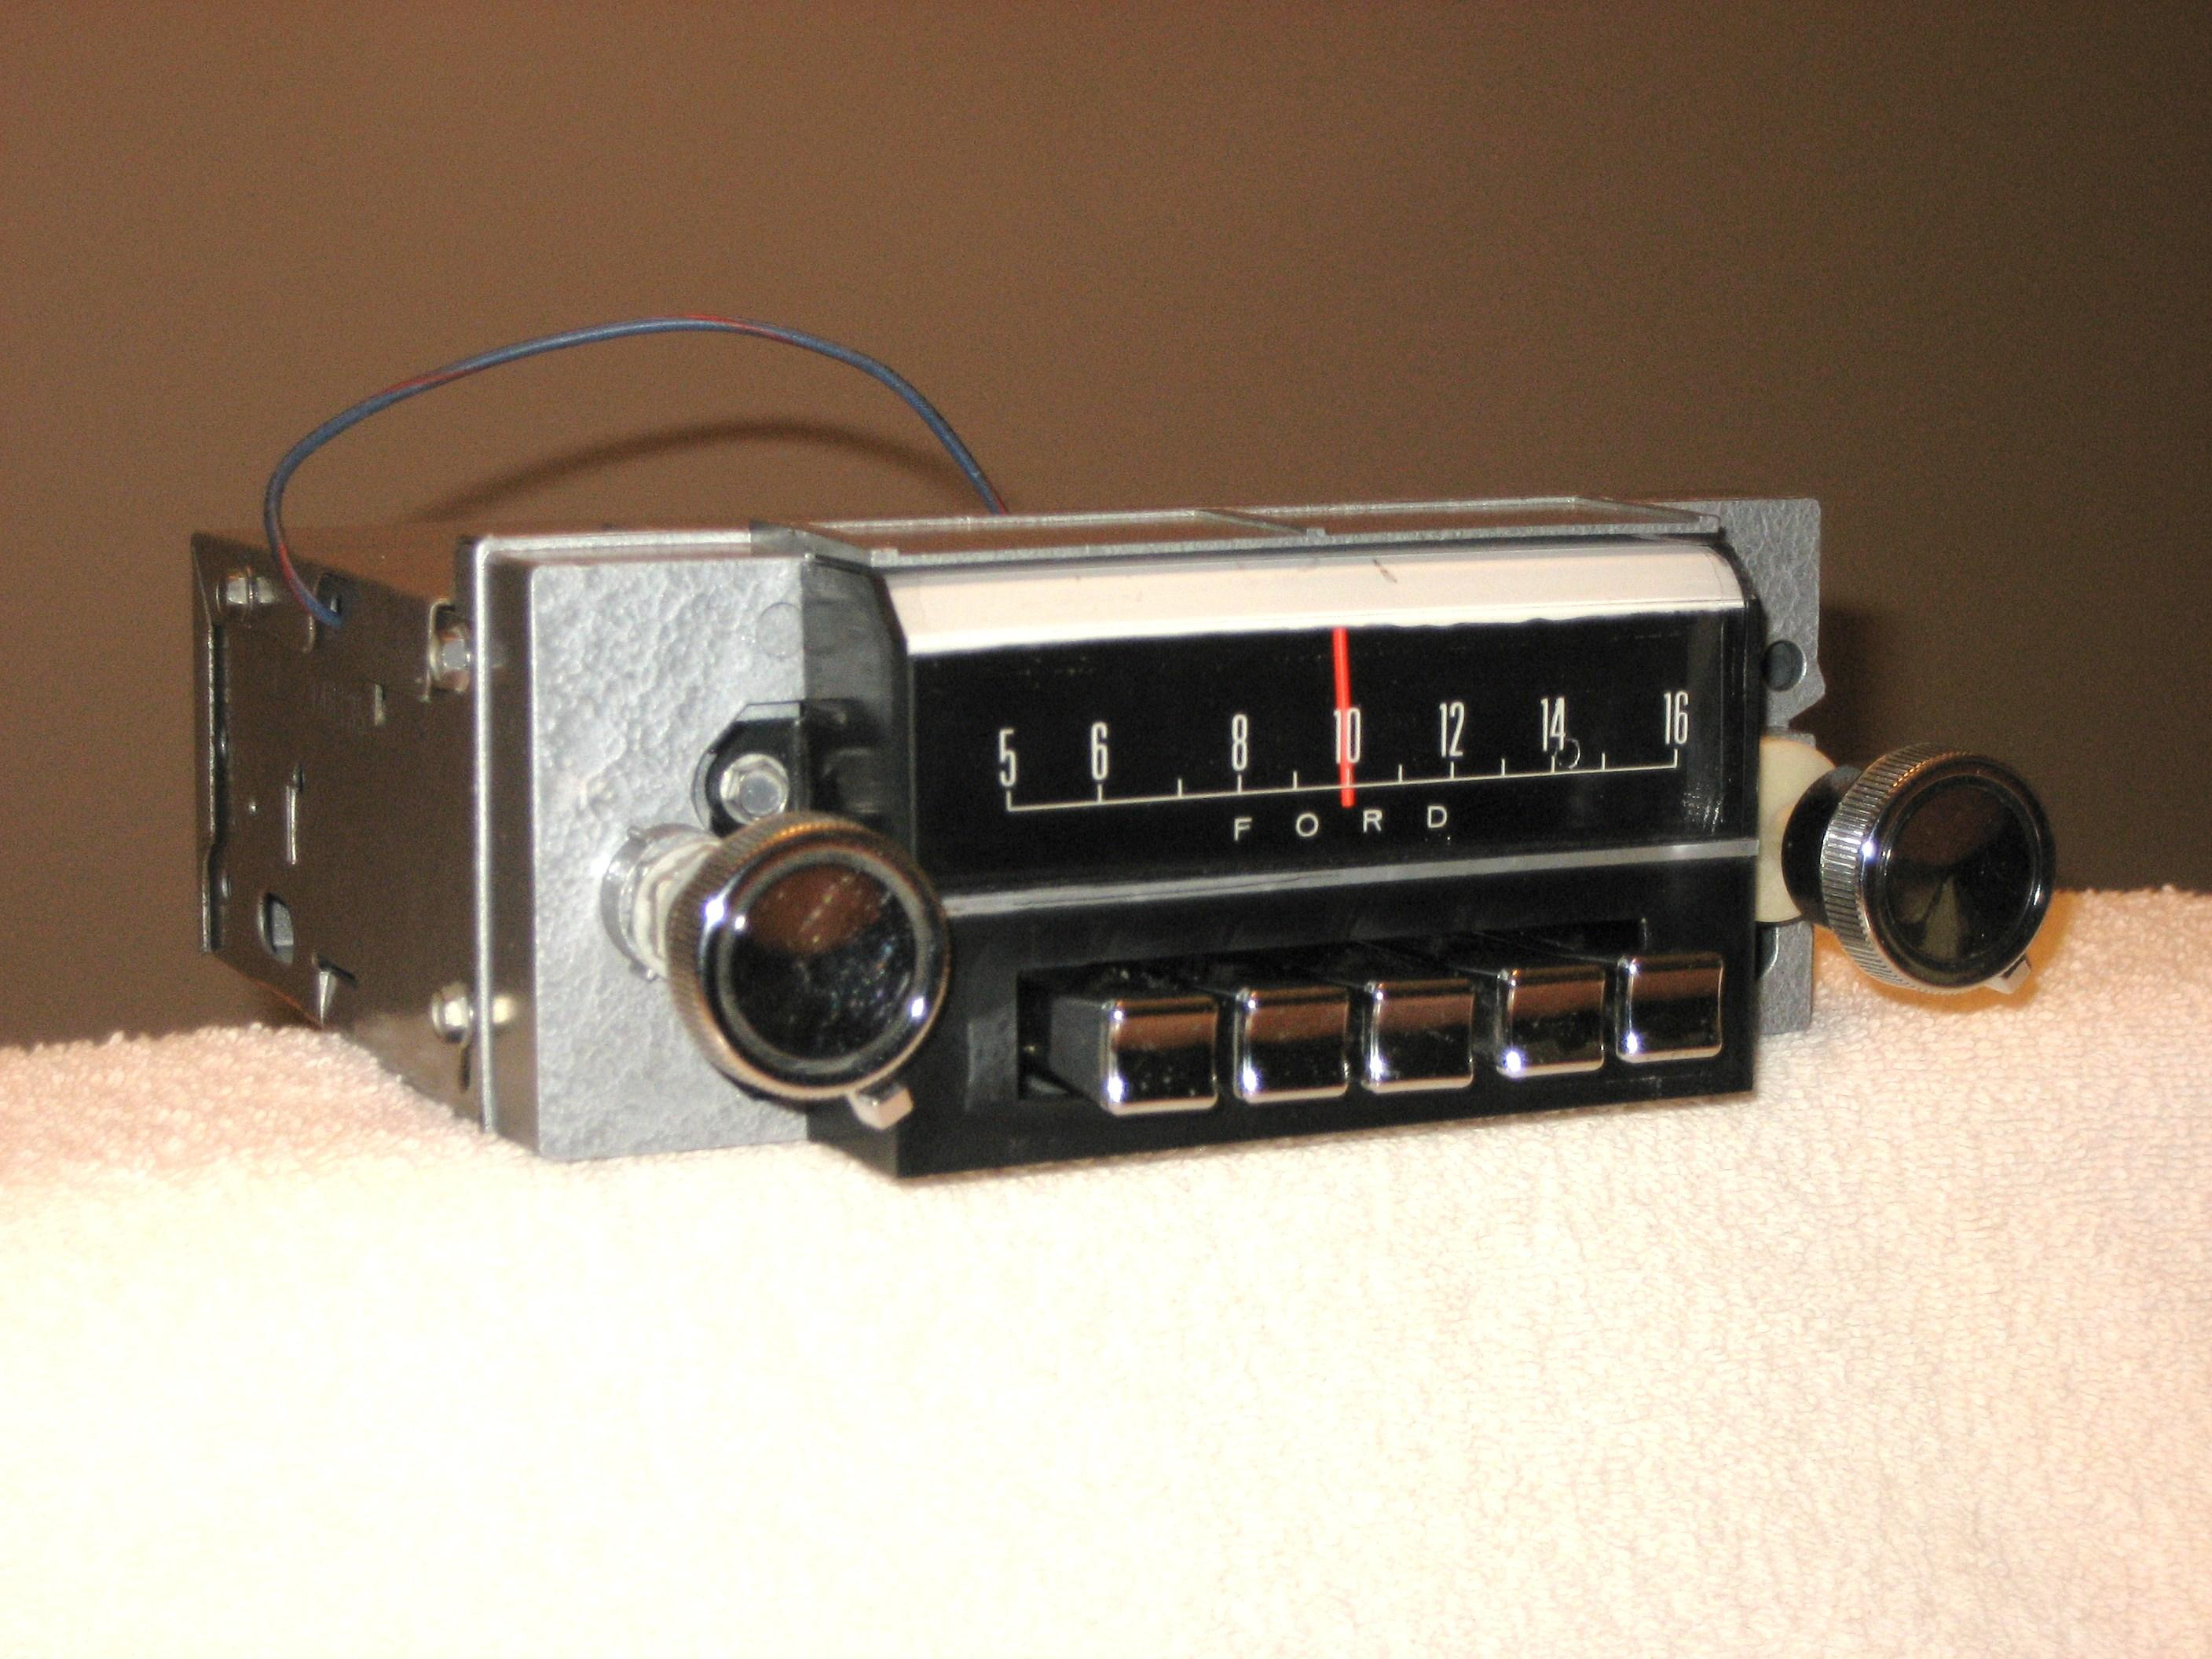 1967 MUSTANG AM-FM STEREO RADIO 7TPZ